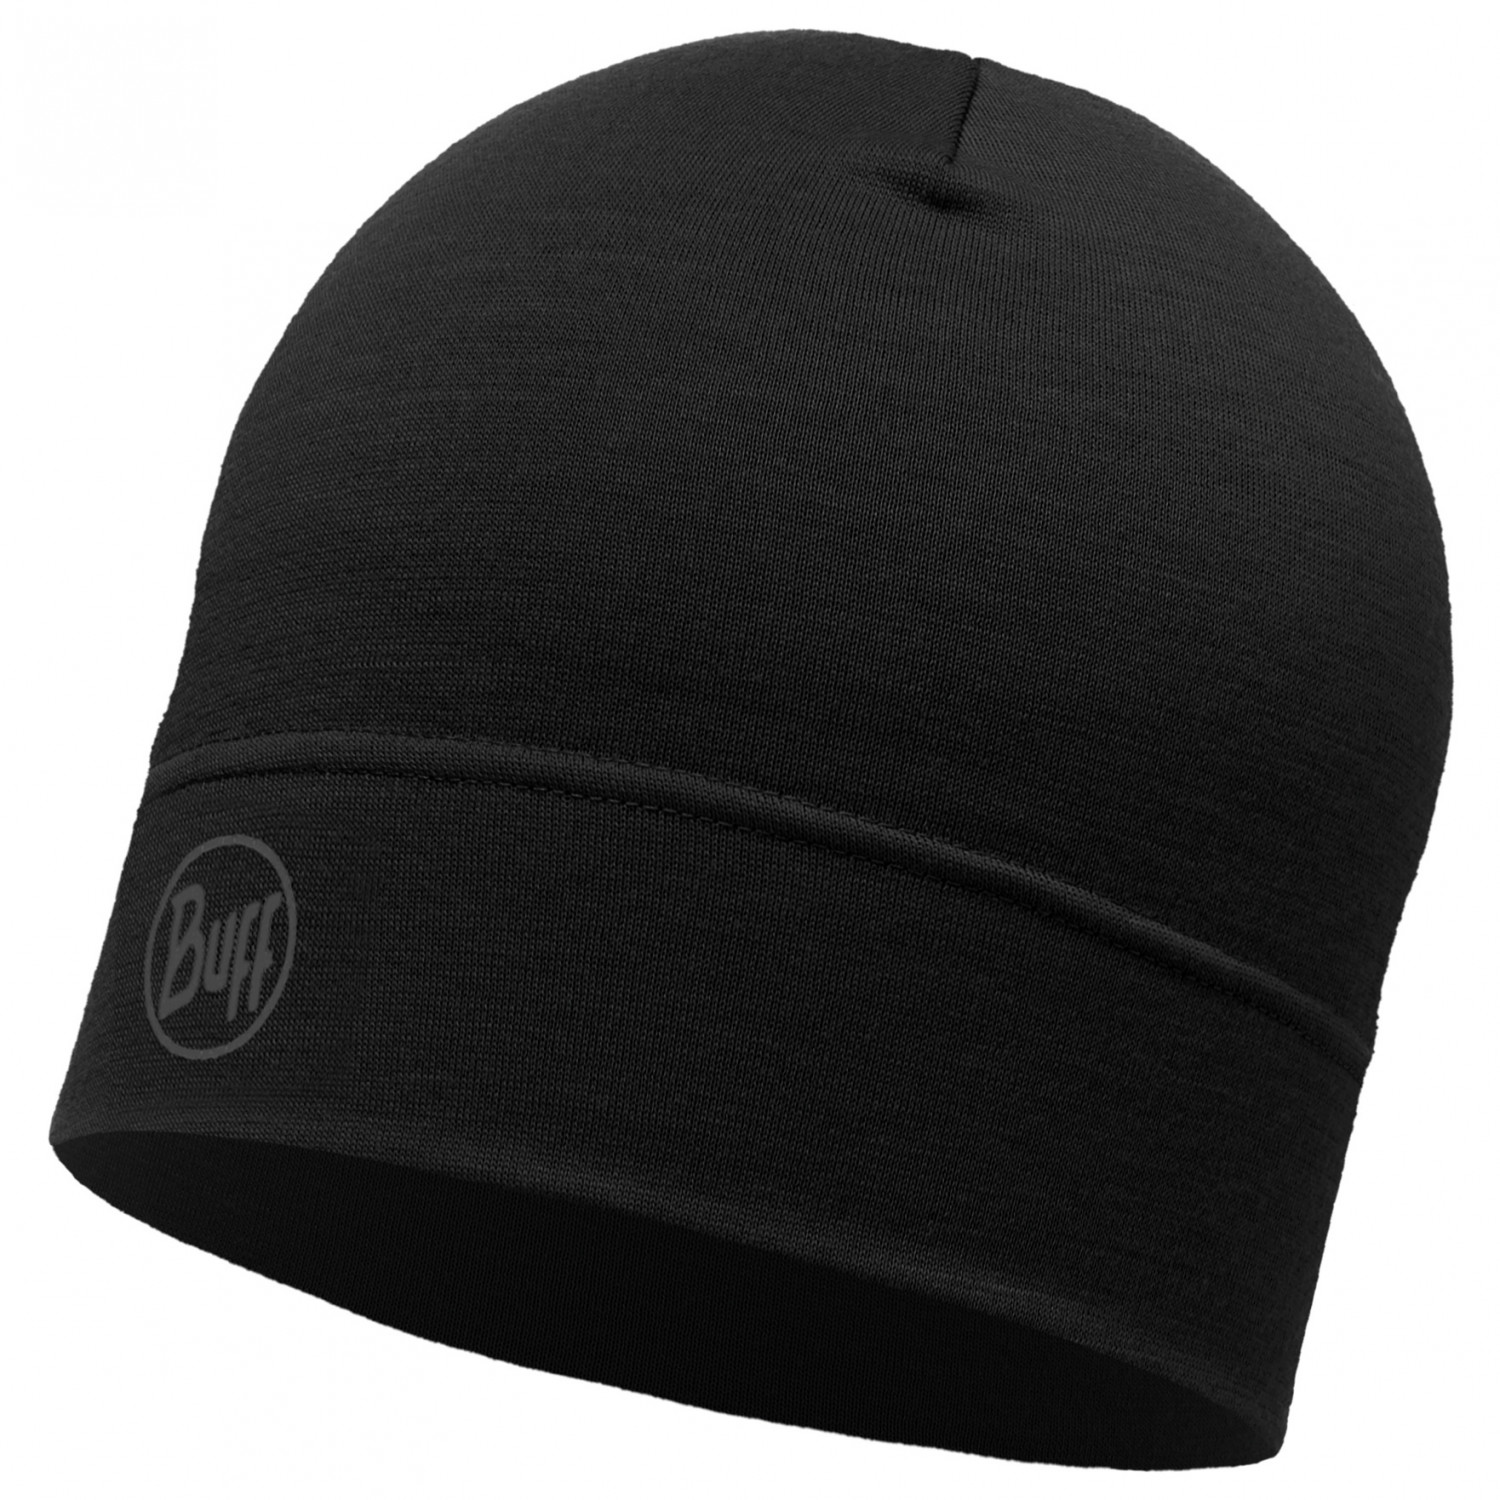 e73fde9f7 Merino Wool Beanie Hat Uk - The Best Photos Of Hat